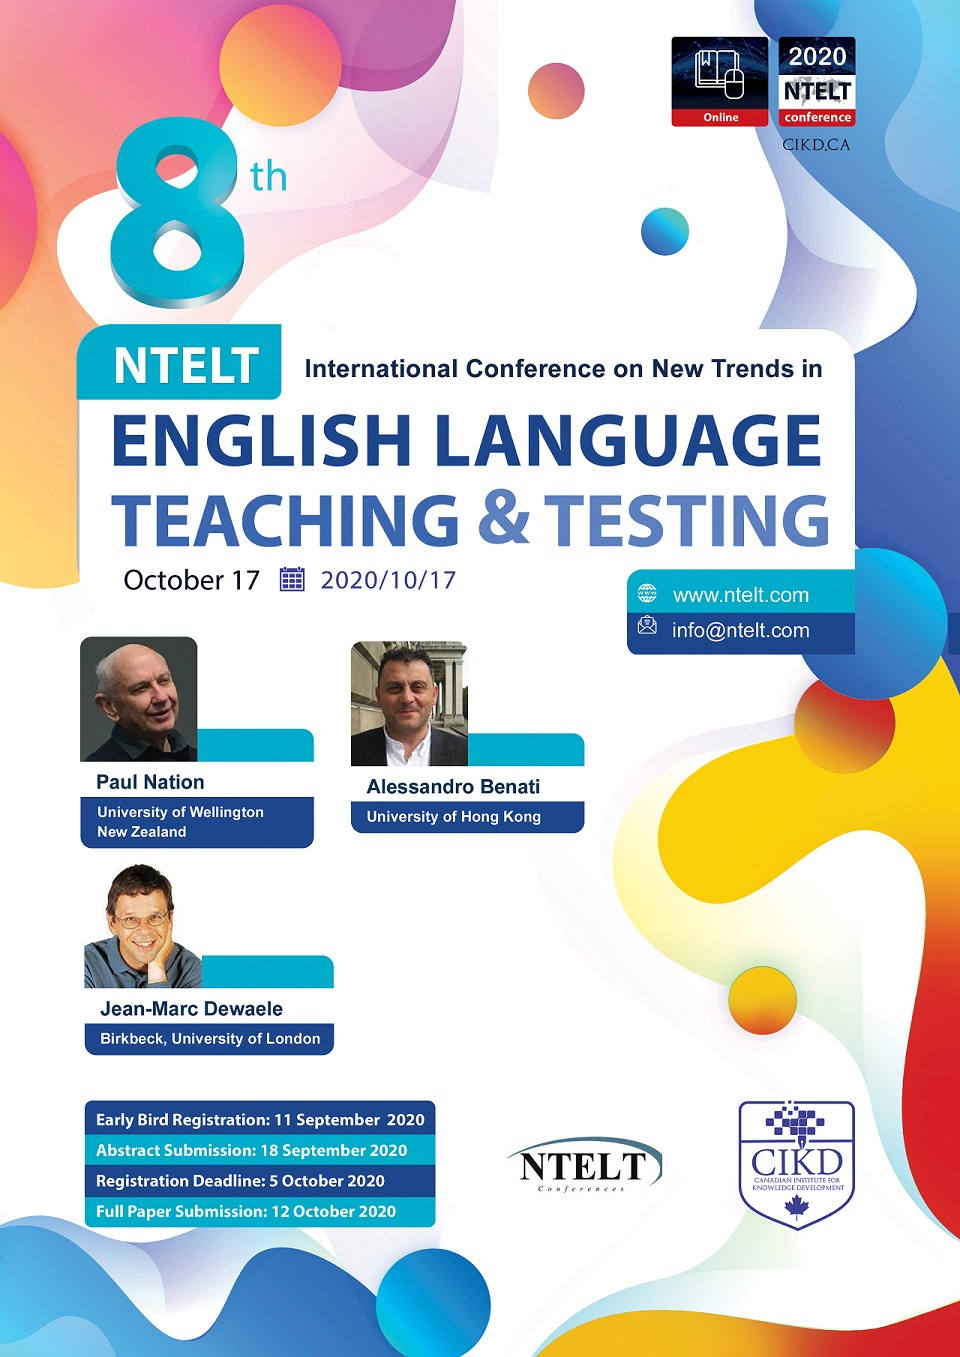 NTELT International Conference on New Trends in English Language Teaching & Testing